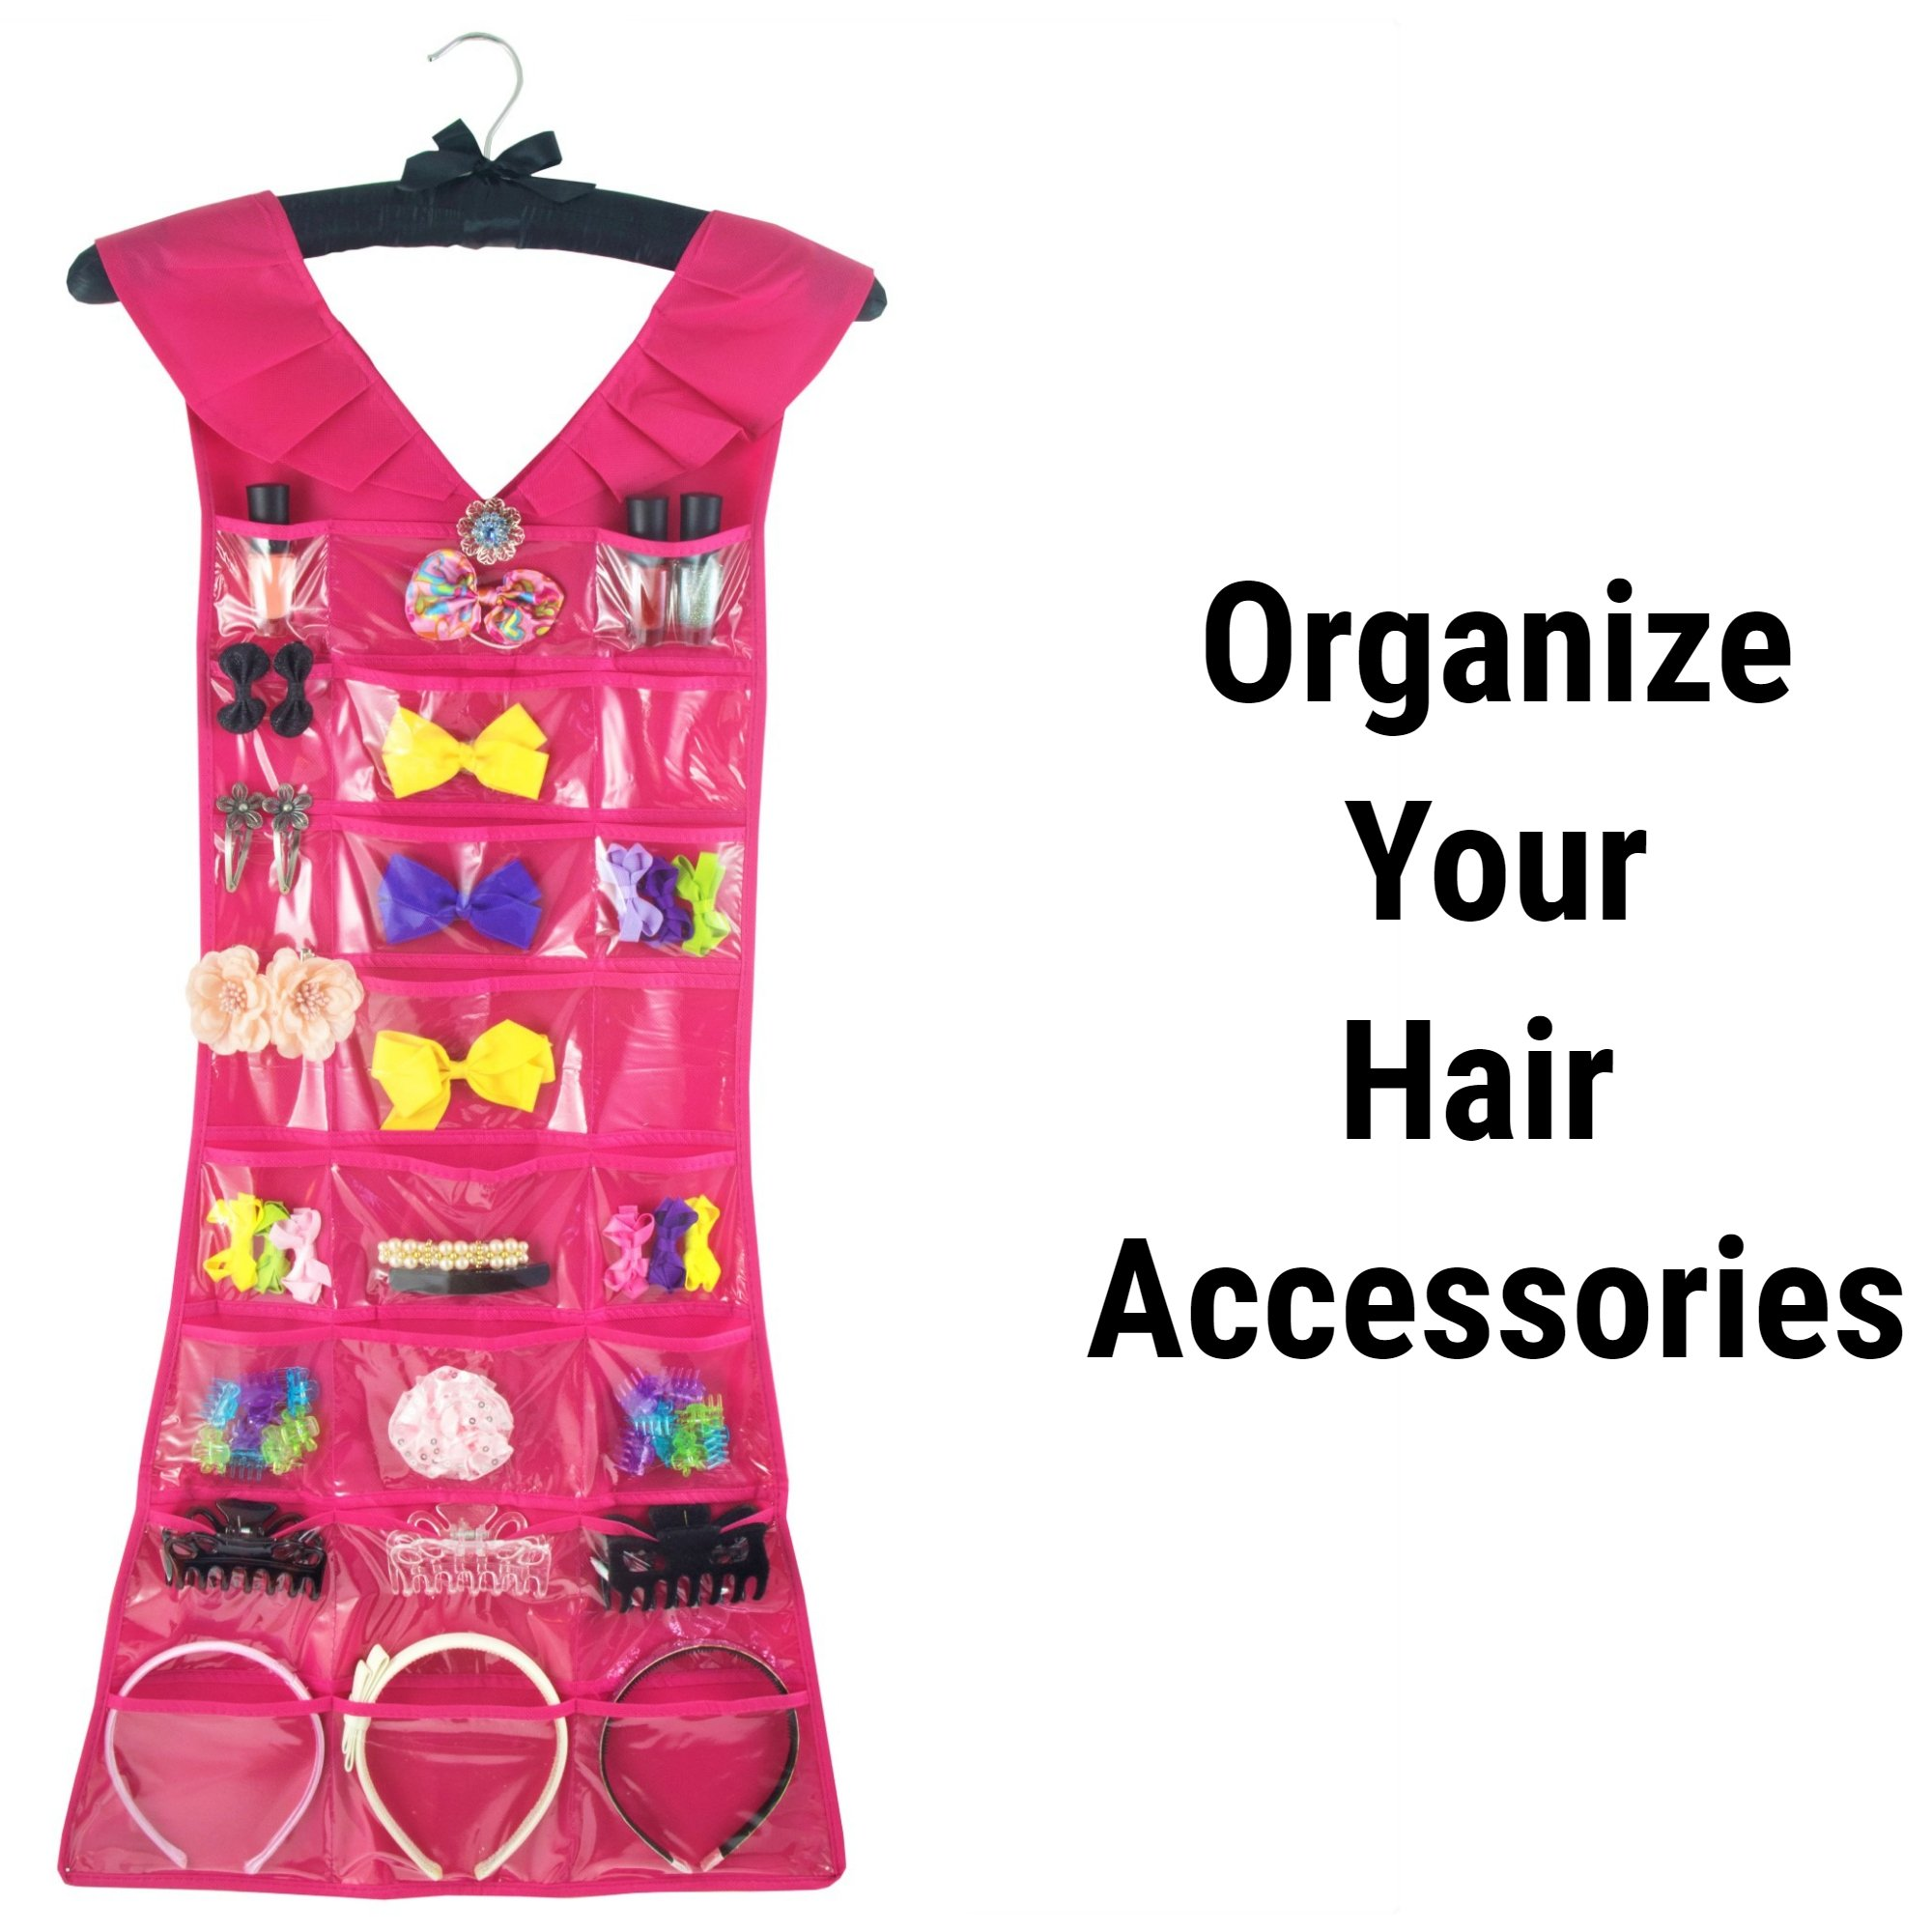 Marcus Mayfield Hanging Jewelry Organizer, Closet Storage with Satin Hanger, 2 sided for Jewelry, Hair Accessories & Makeup (1-Black Dress & Pink Satin Hanger, 24 pockets 17 hooks) by Marcus Mayfield (Image #5)